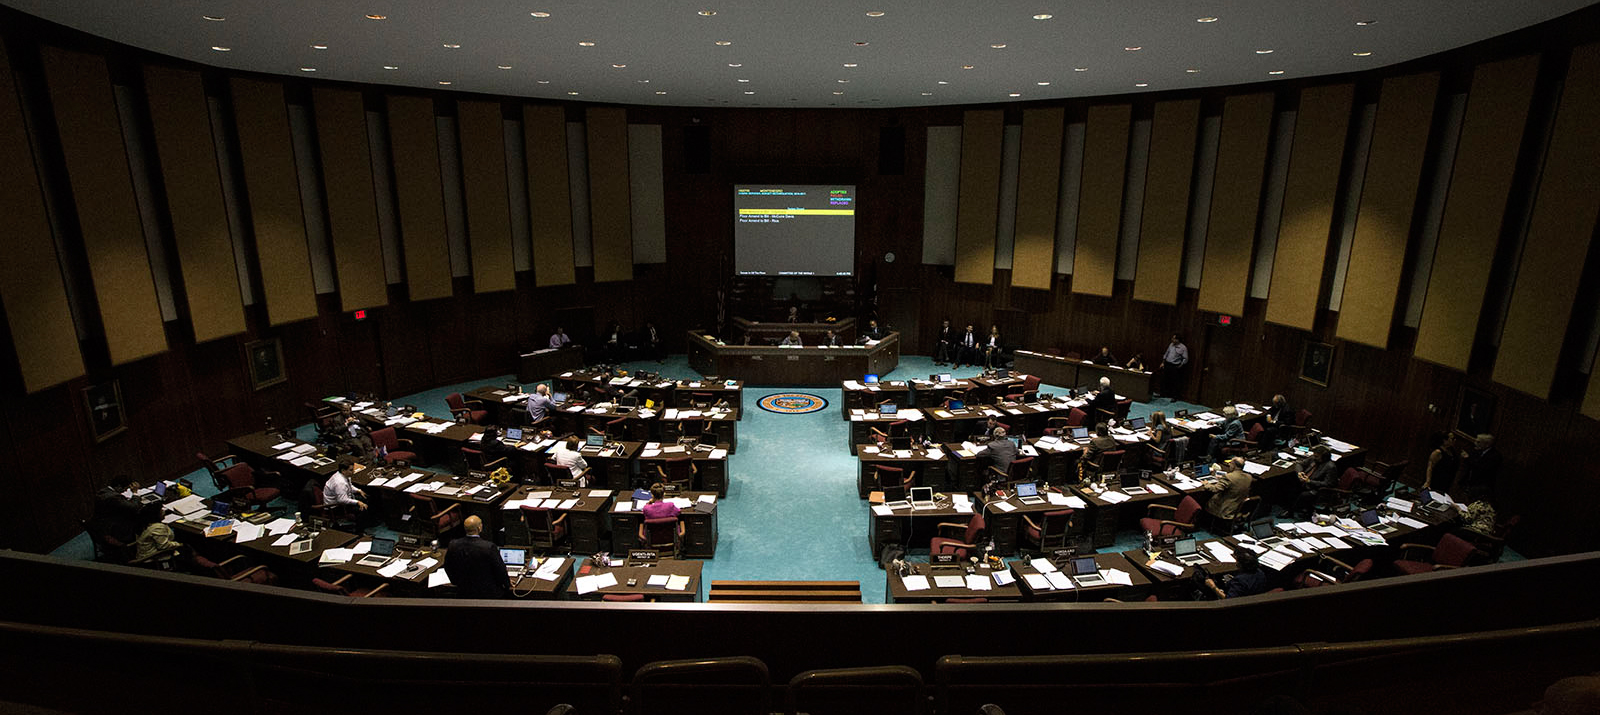 Lawmakers meet to discuss sexual harassment policies, choose not to broadcast meeting